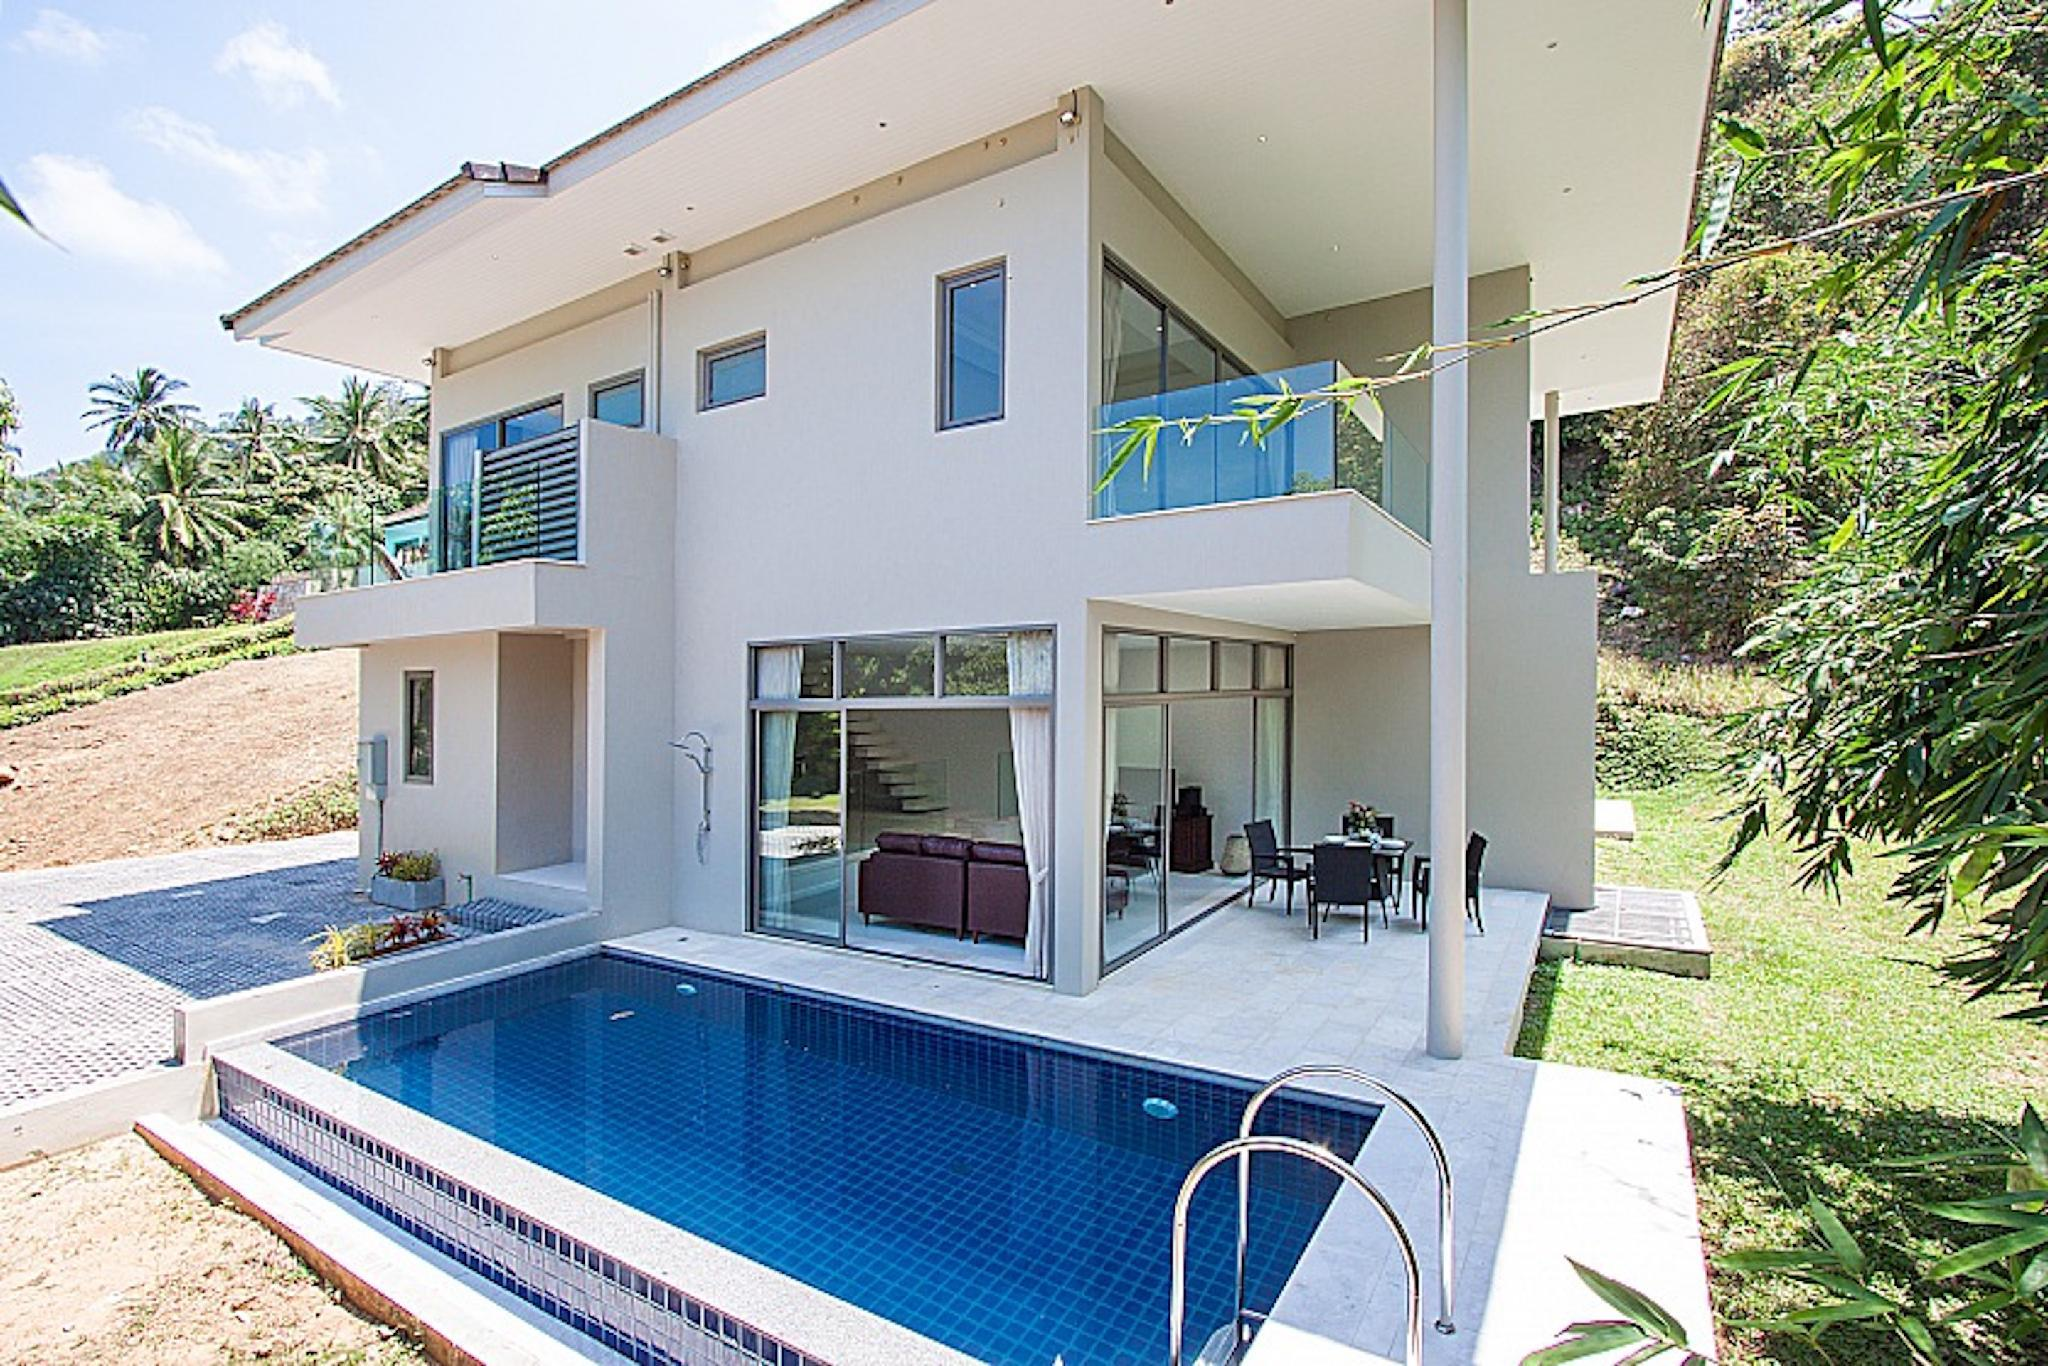 4 Bedroom Villa With 2 Private Pools